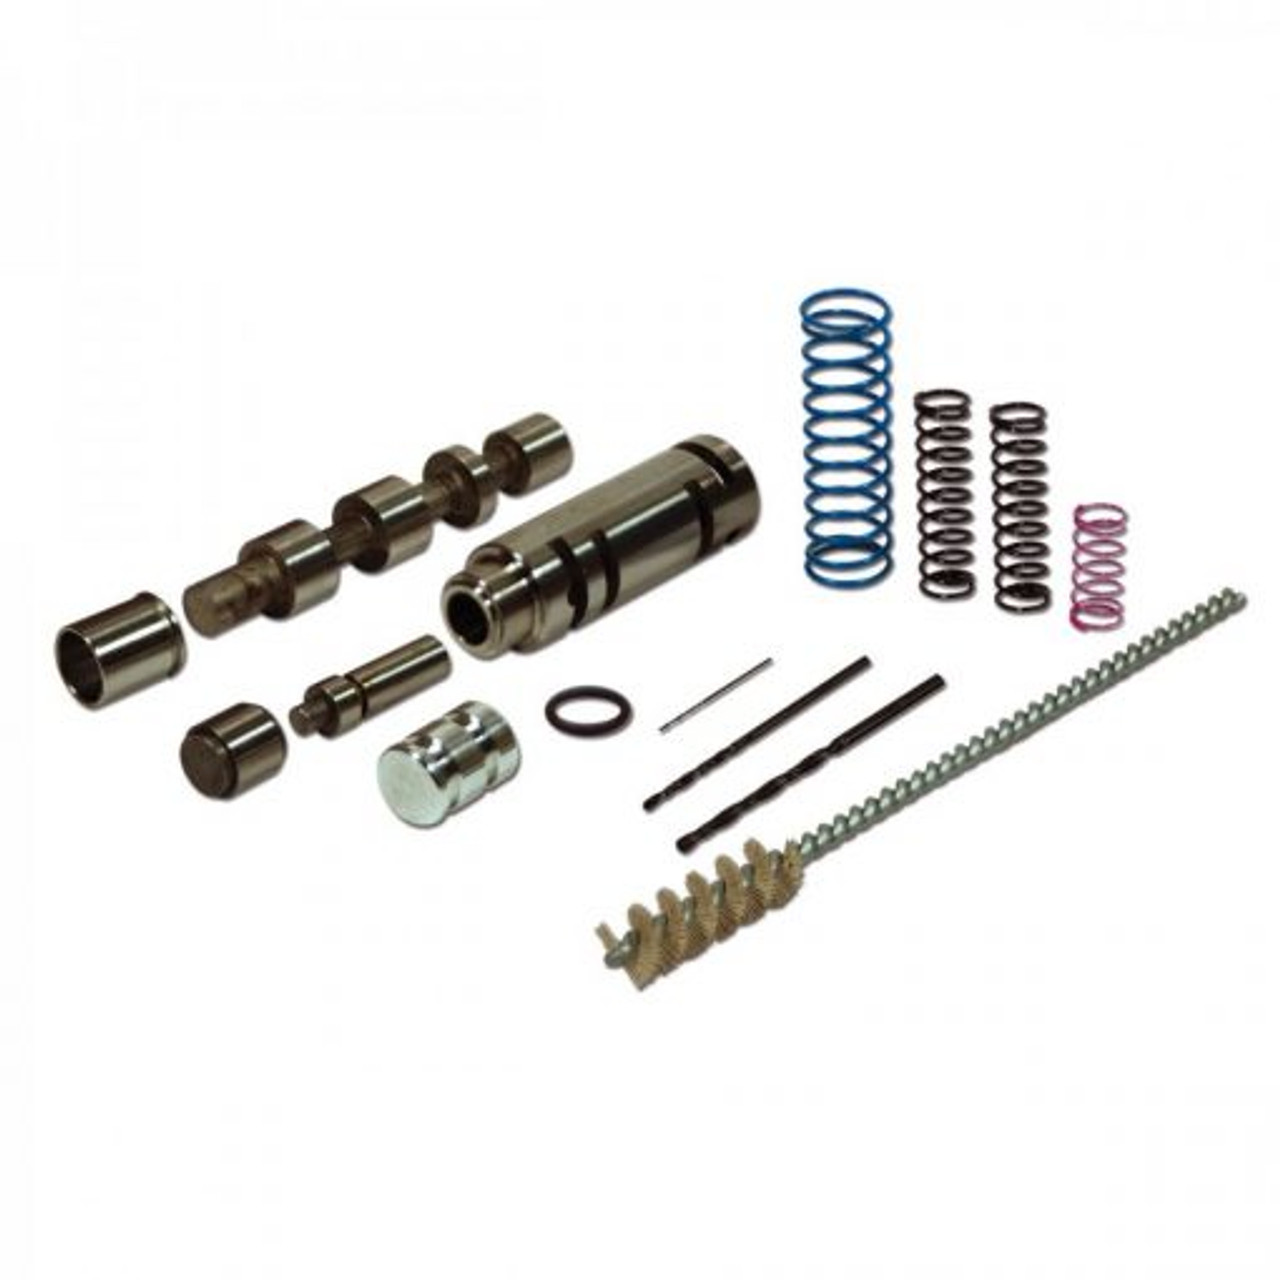 GM 4T65E Valve Body Shift Correction Package by Superior (1997-2011)